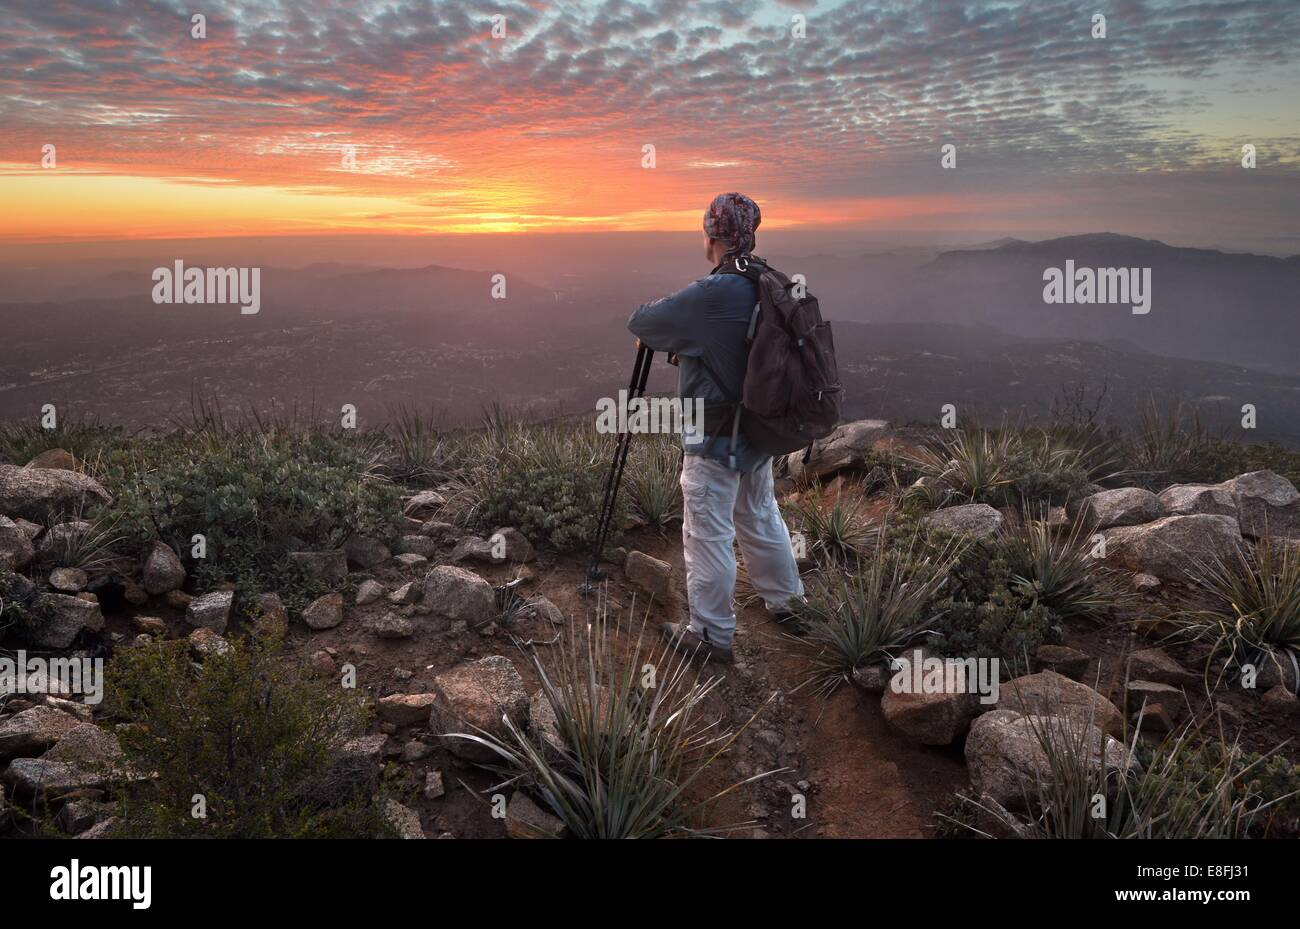 Man looking at view at sunset, Cleveland National Forest, California, America, USA - Stock Image